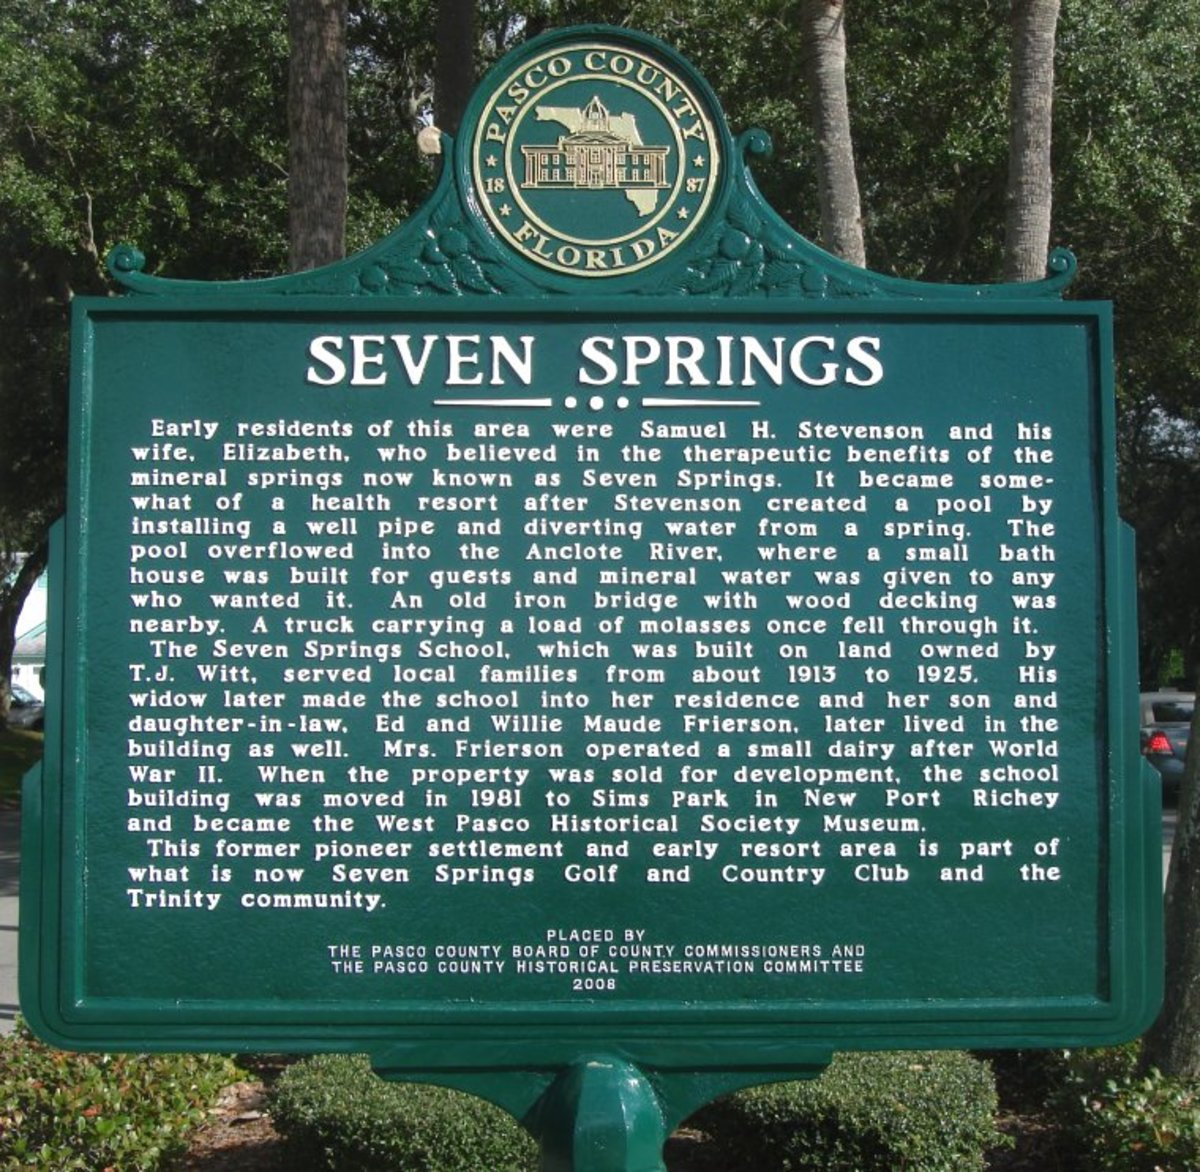 The Seven Springs historical marker